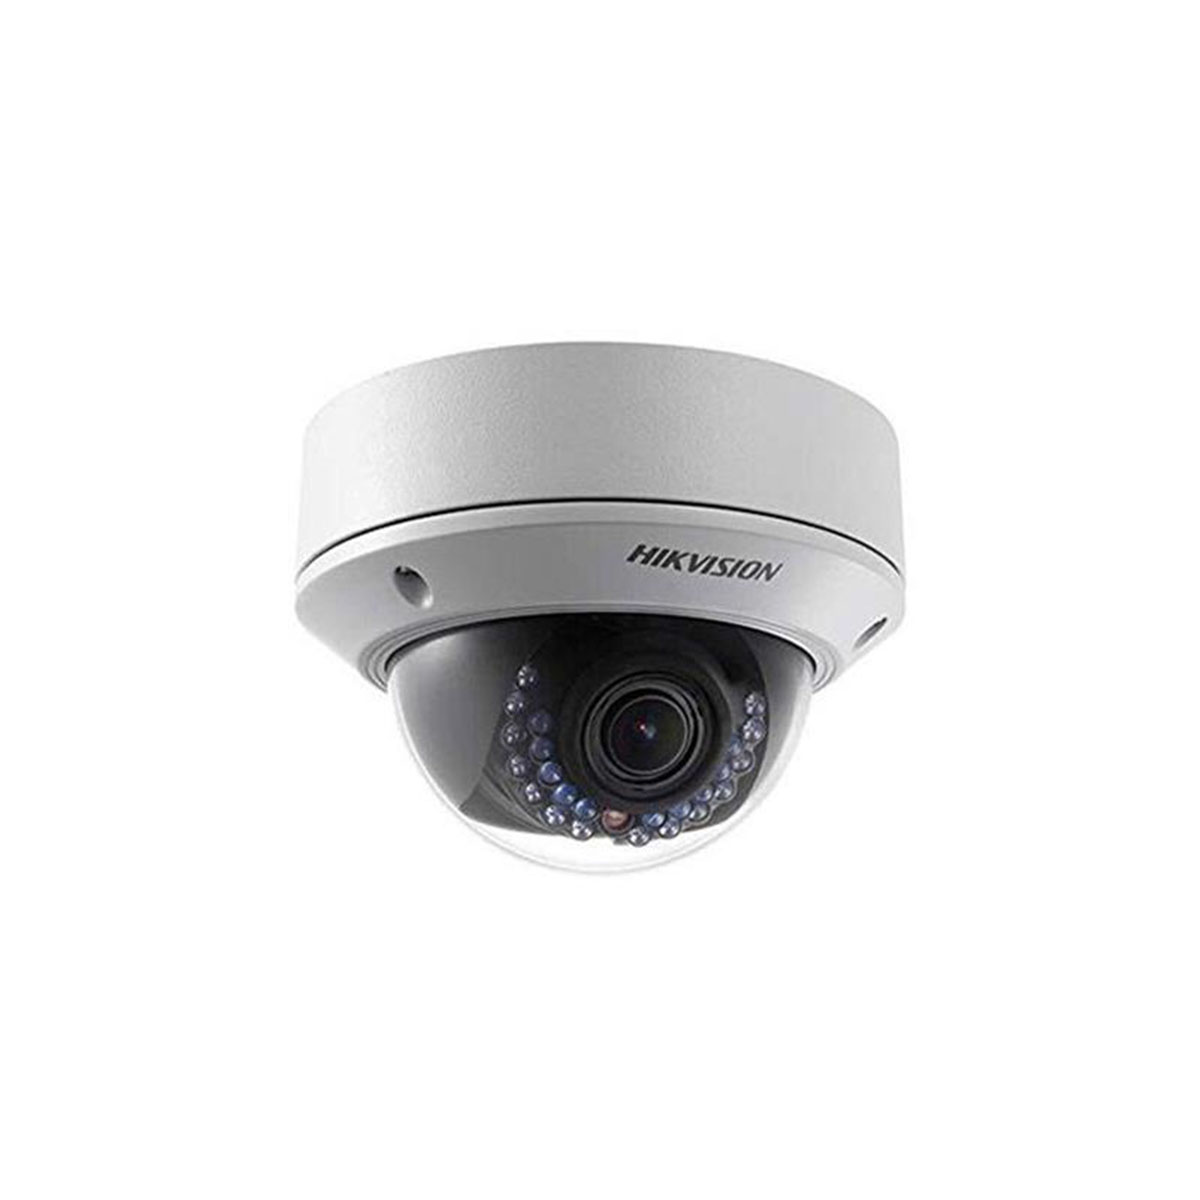 Cámara Hikvision DS-2CD2742FWD-IS IP Tipo Domo 4MP